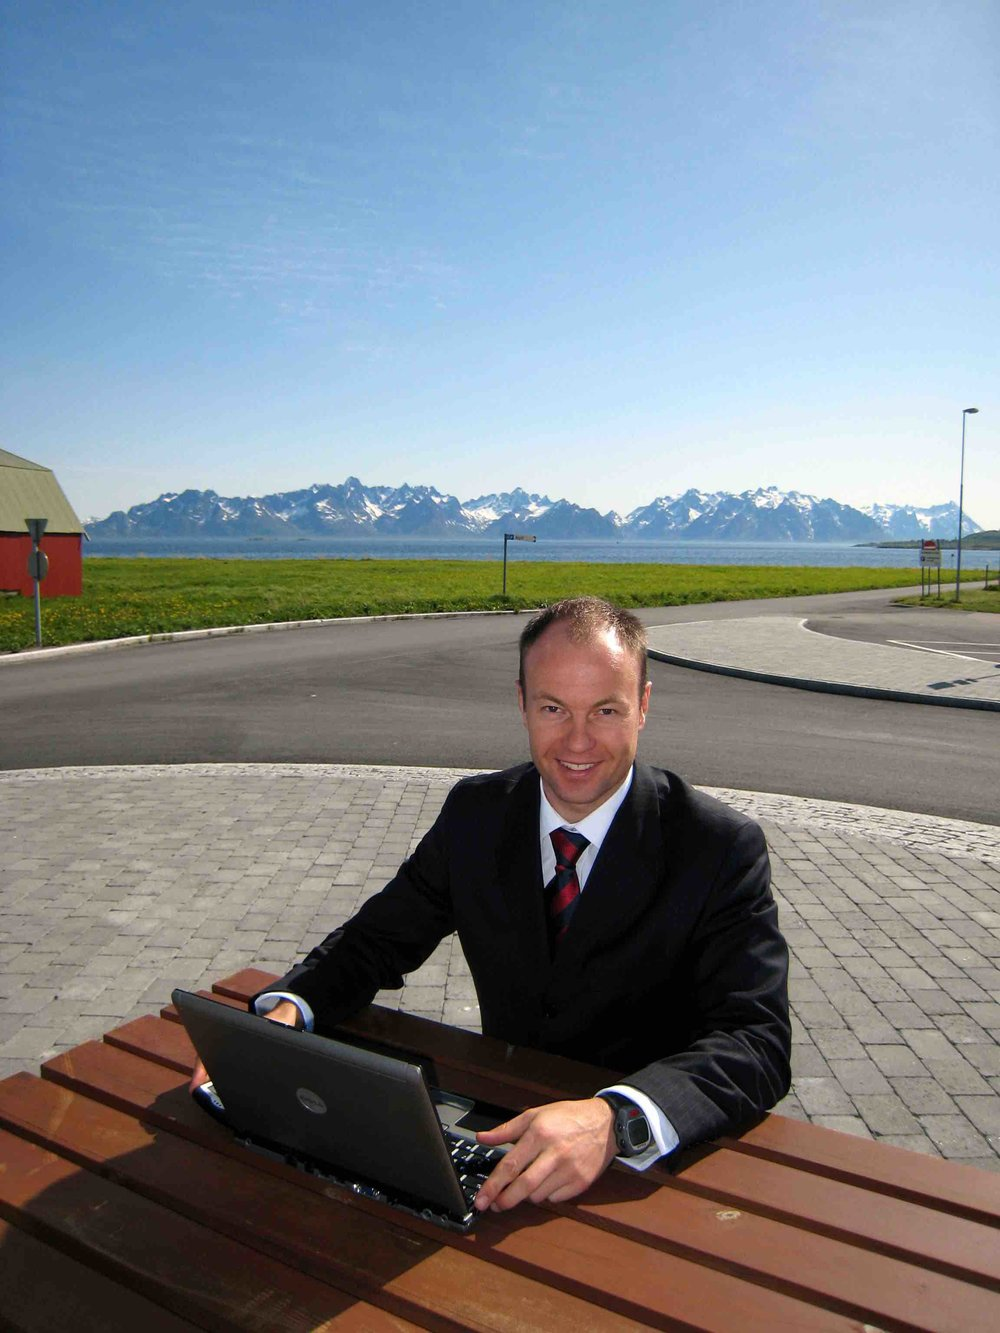 Founder - Keith, back when he had a little more hair and worked in Norway. Yes that's an unfashionable Polar watch on the left arm and a Blackberry in the right hand. This was the scene after the opening of the first Boots Chemist in the Arctic Circle. That's the Lofoten Wall in the background. Norway is beautiful, you should visit. Back then Blackberrys had 5 DAYS battery life.